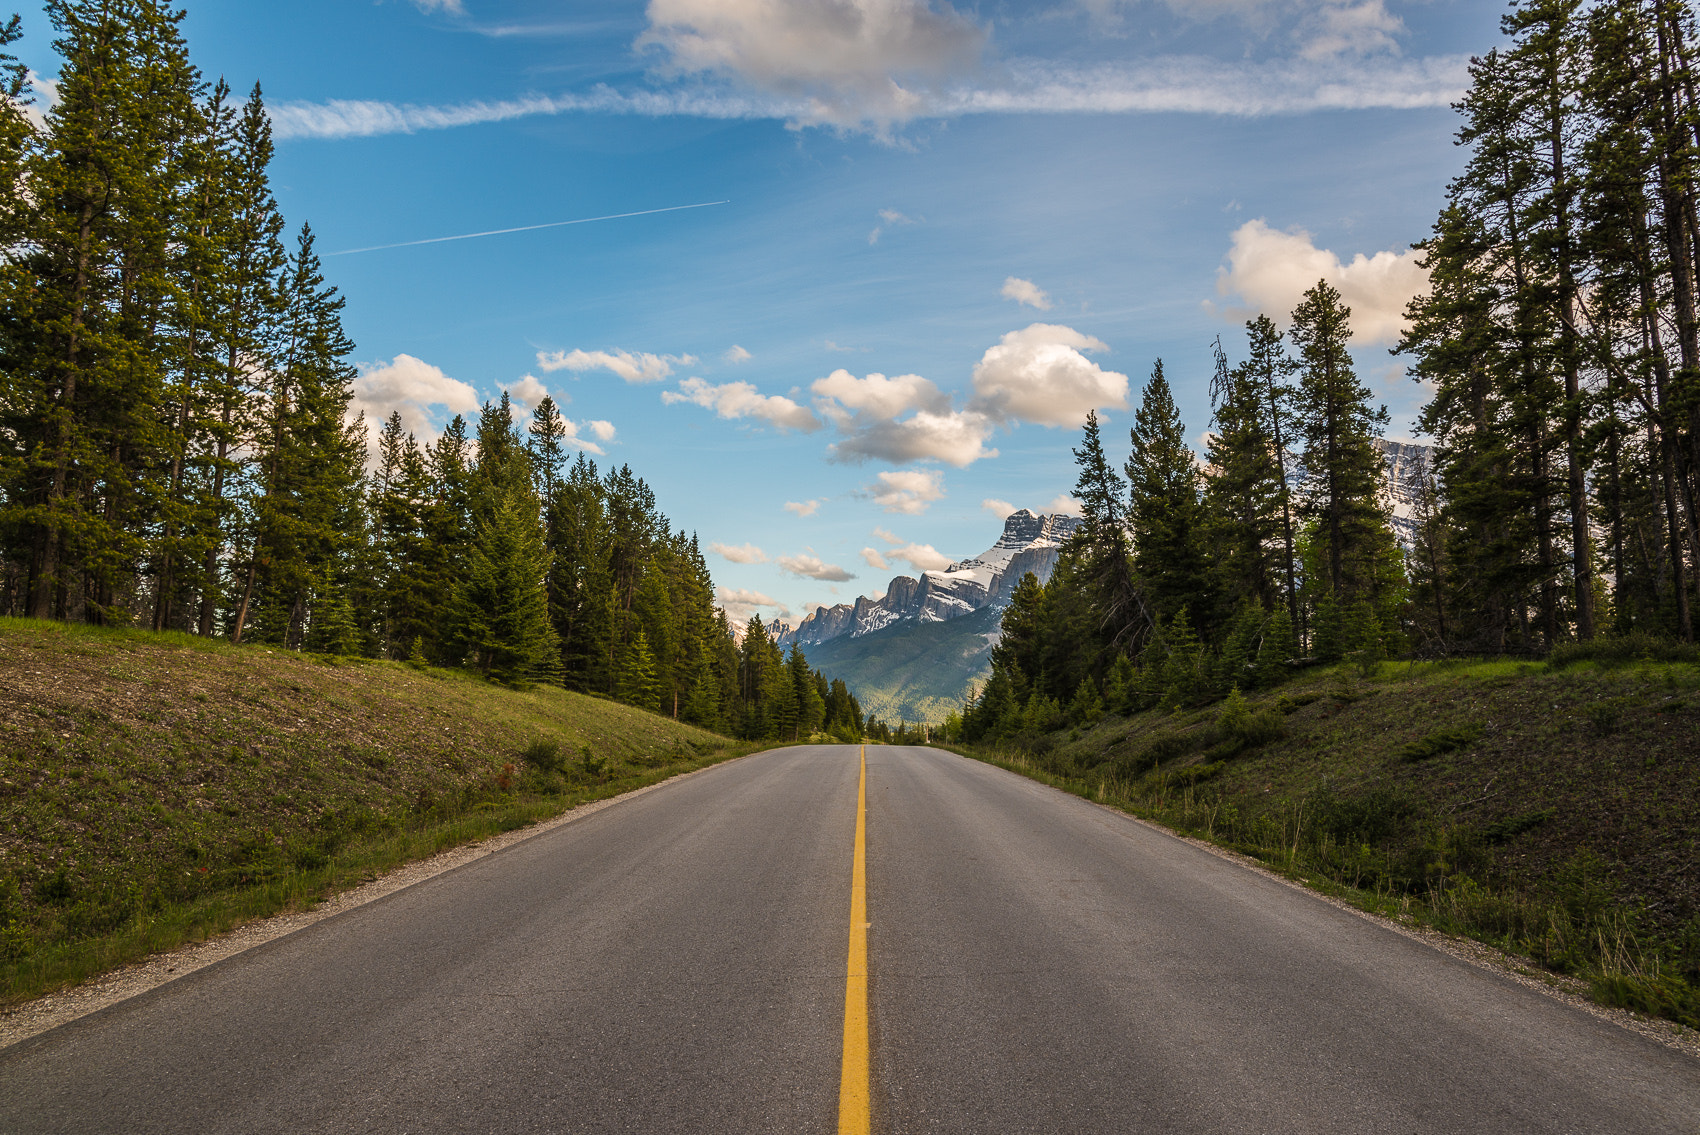 Photograph Journey's Beginning by Mike Wiacek on 500px